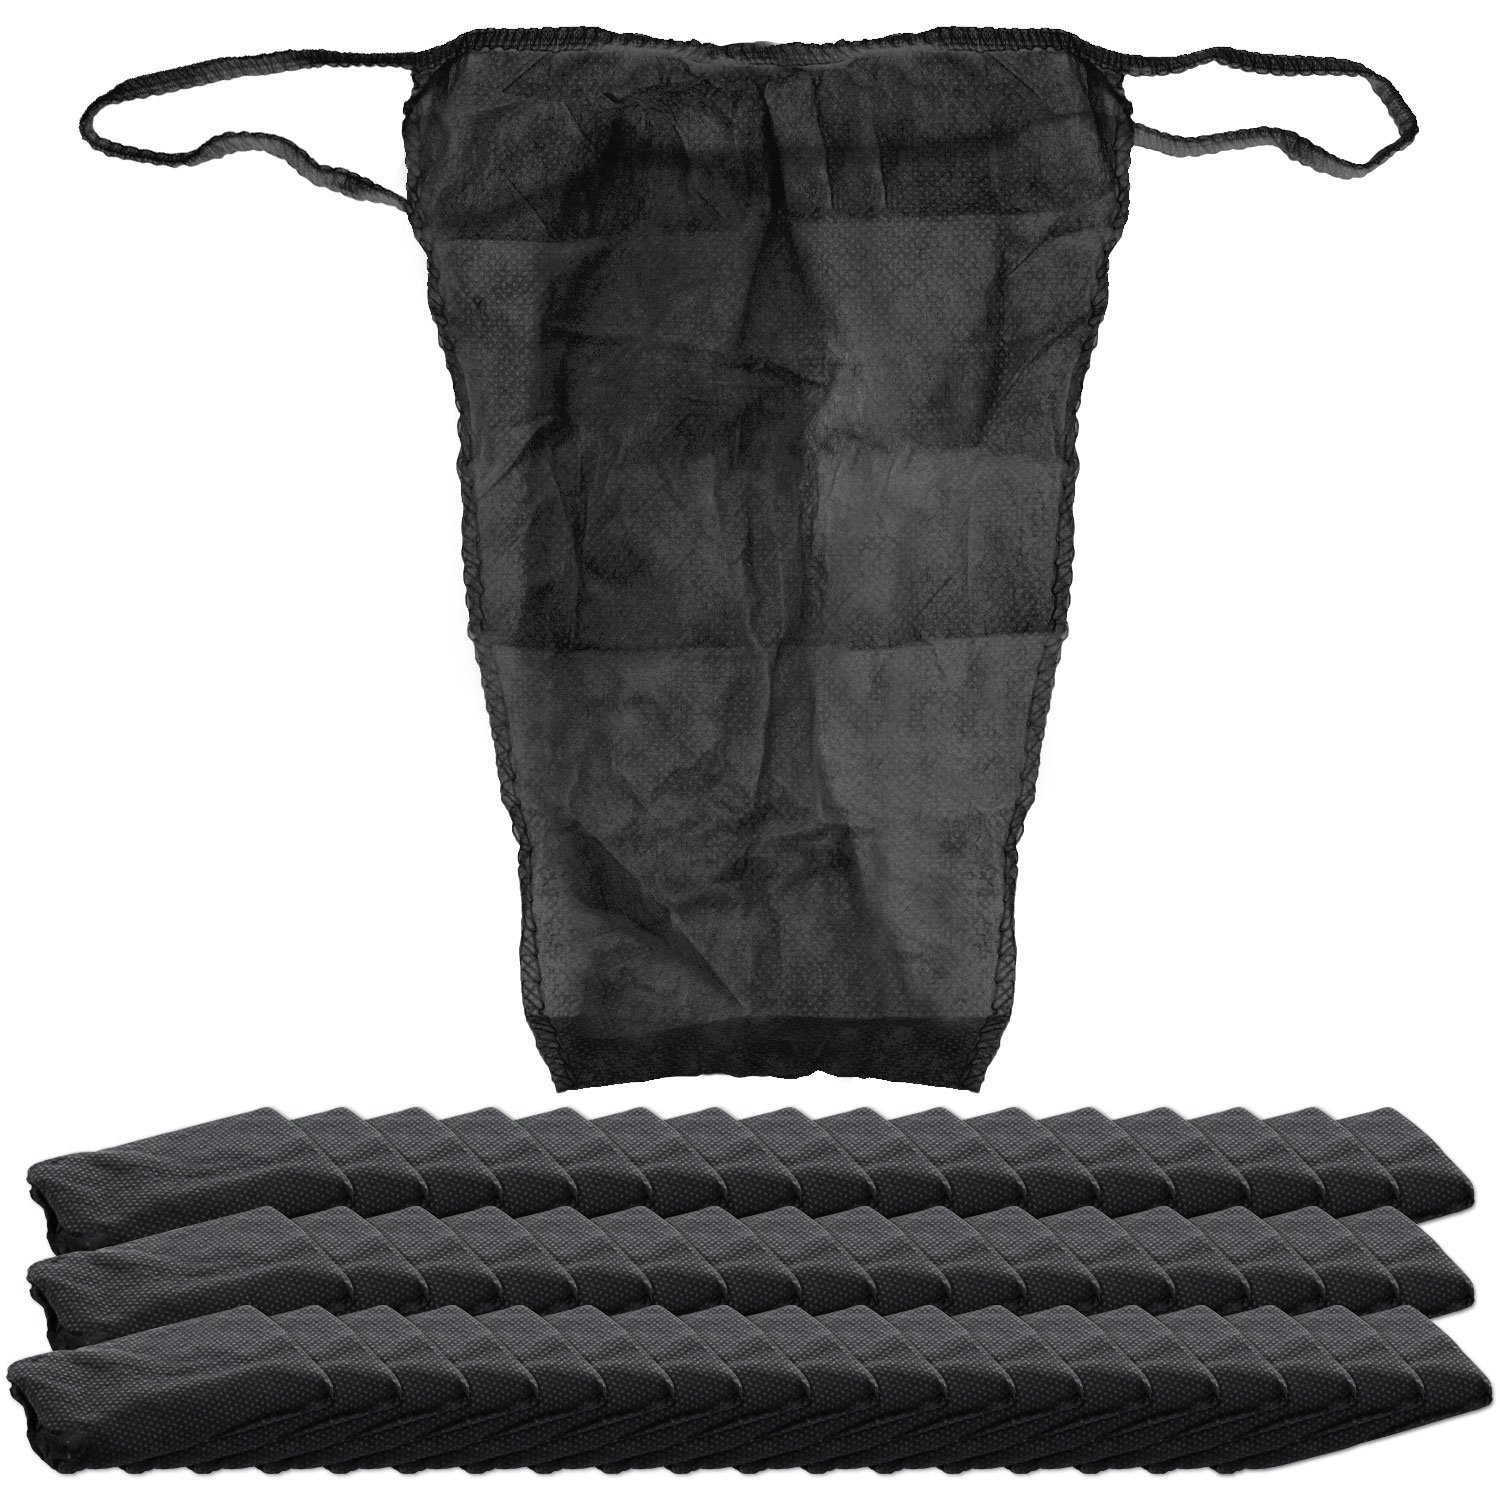 Belloccio Pack of 50 Disposable Thong Panties - Airbrush Spray Tanning, Body Wraps